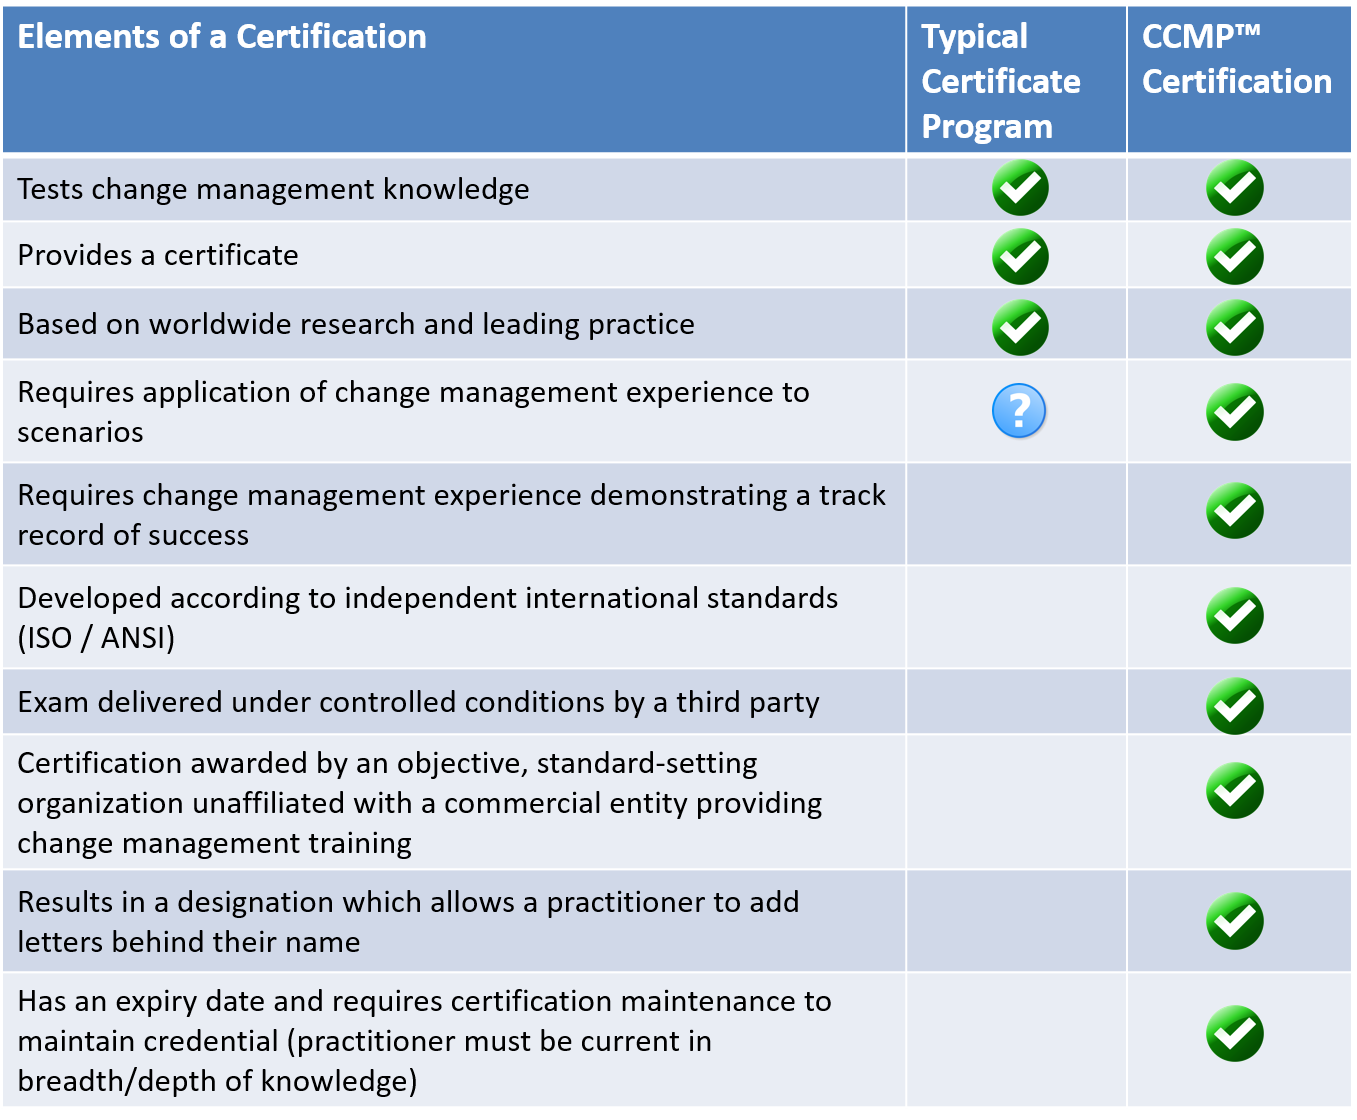 CCMP vs. other certificate programs